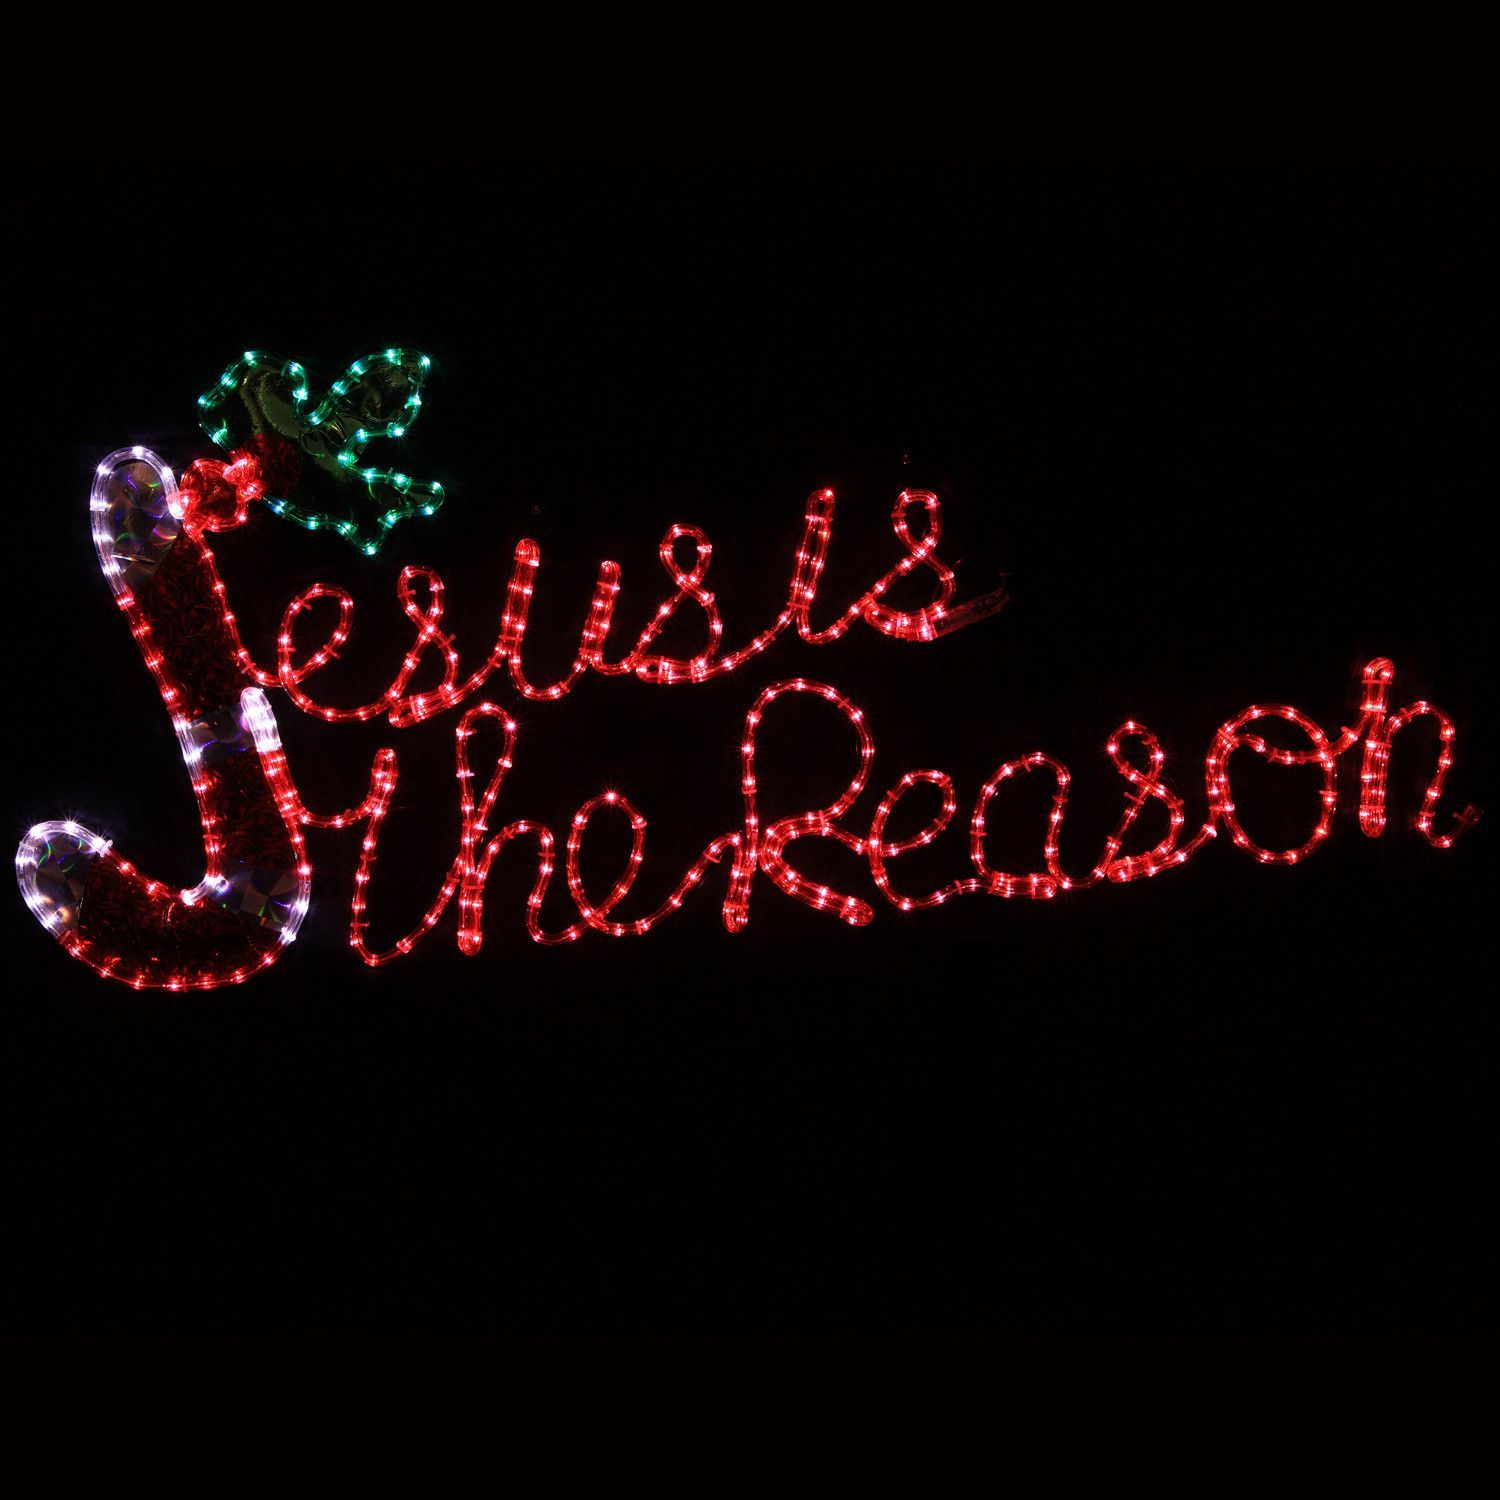 Jesus Is The Reason Christmas Hanging Outdoor Led Display Decorating With Christmas Lights Christmas Rope Lights Outdoor Christmas Decorations